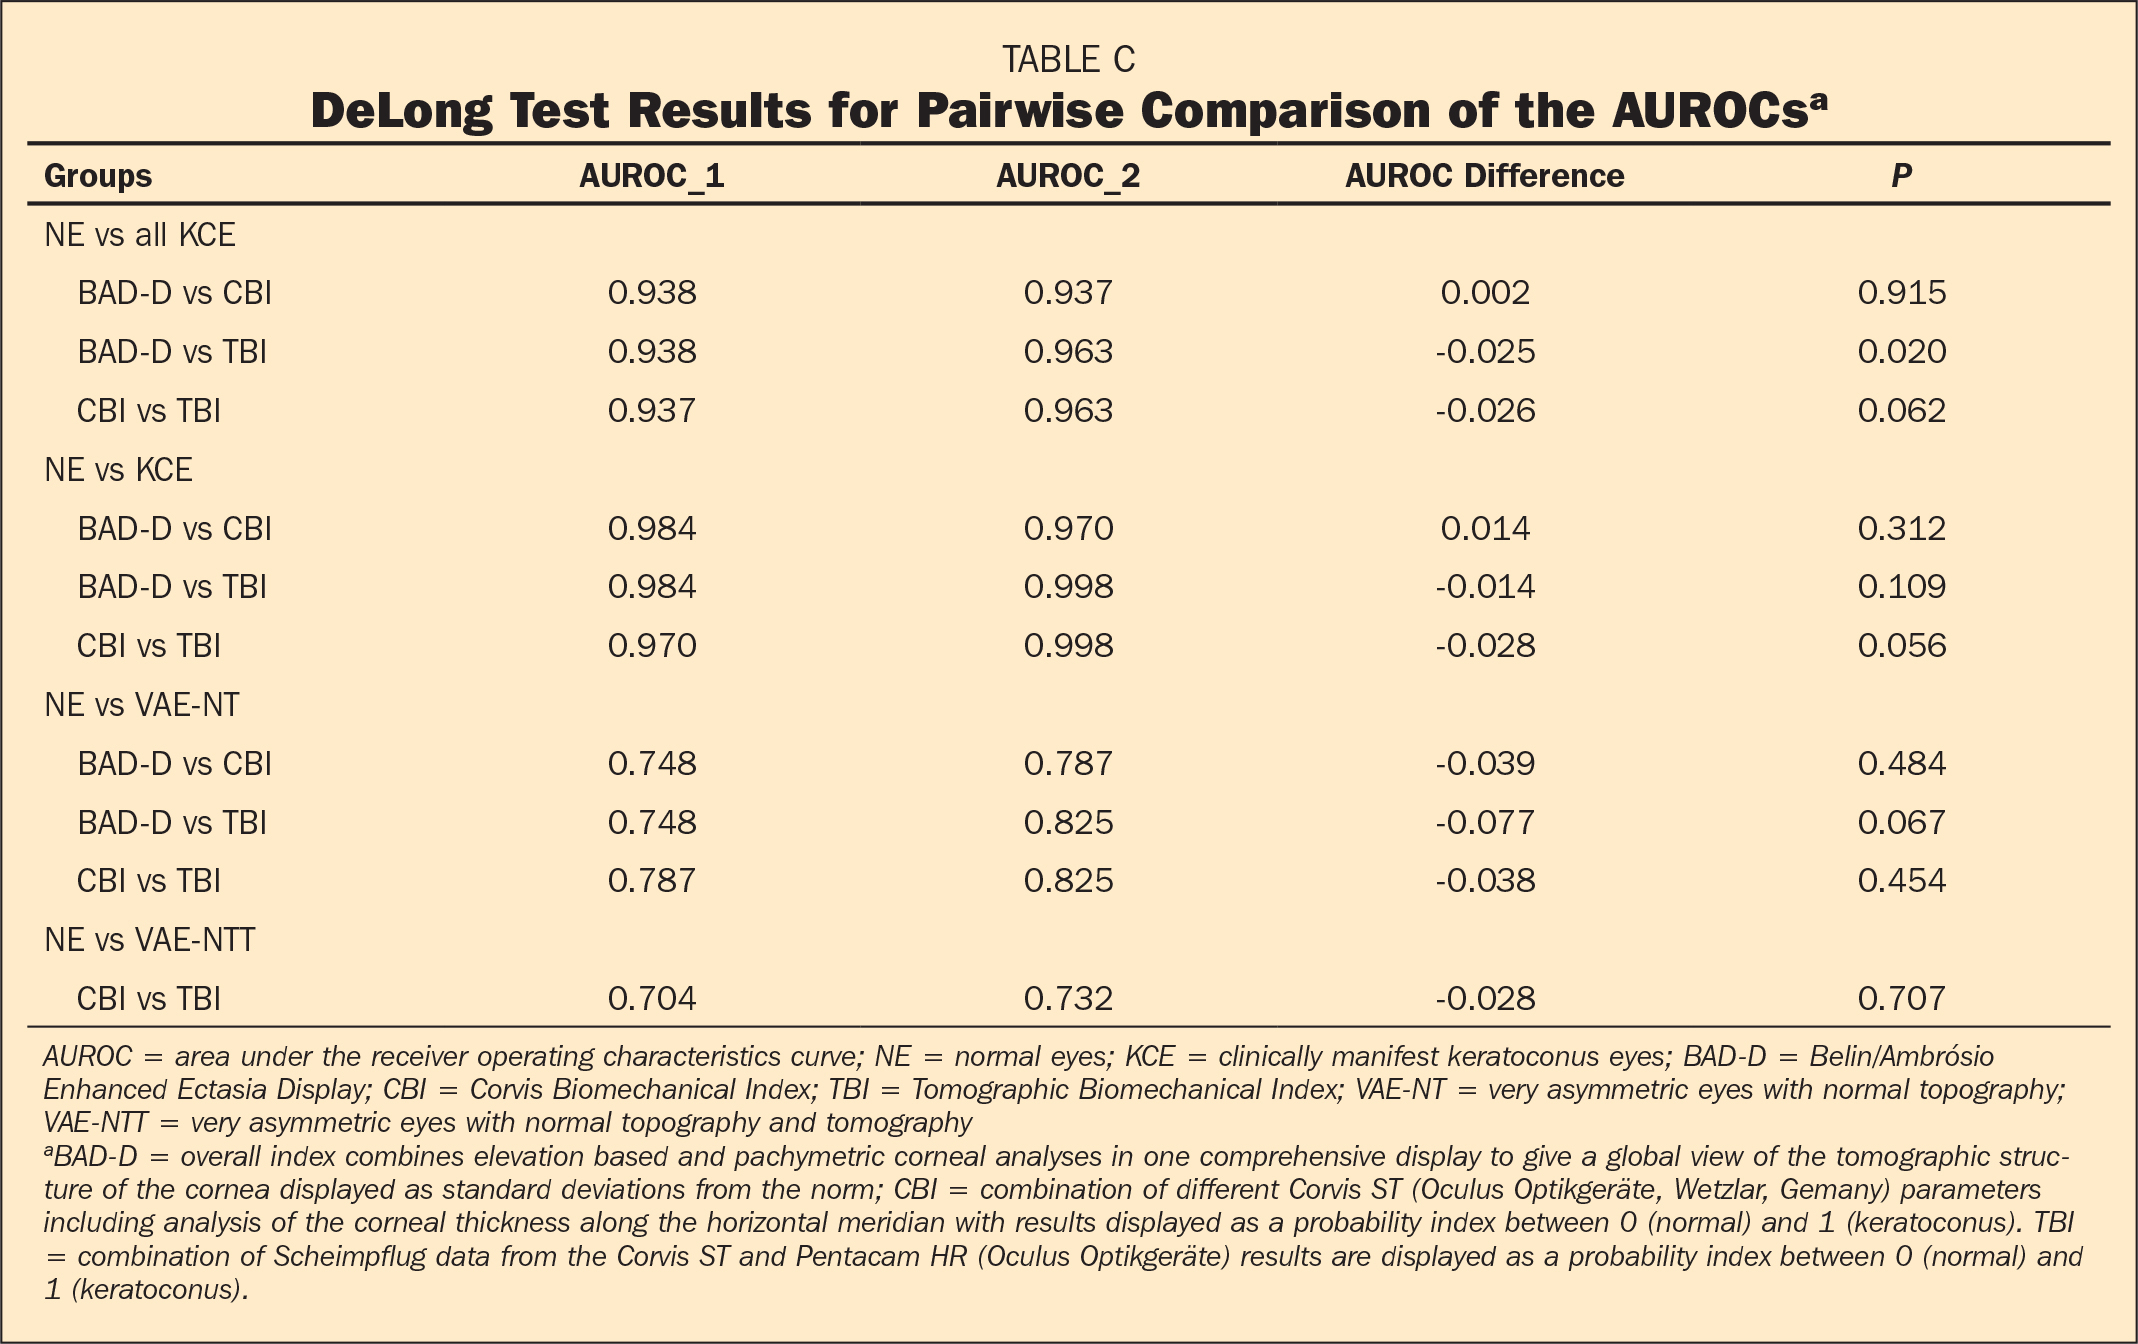 DeLong Test Results for Pairwise Comparison of the AUROCsa